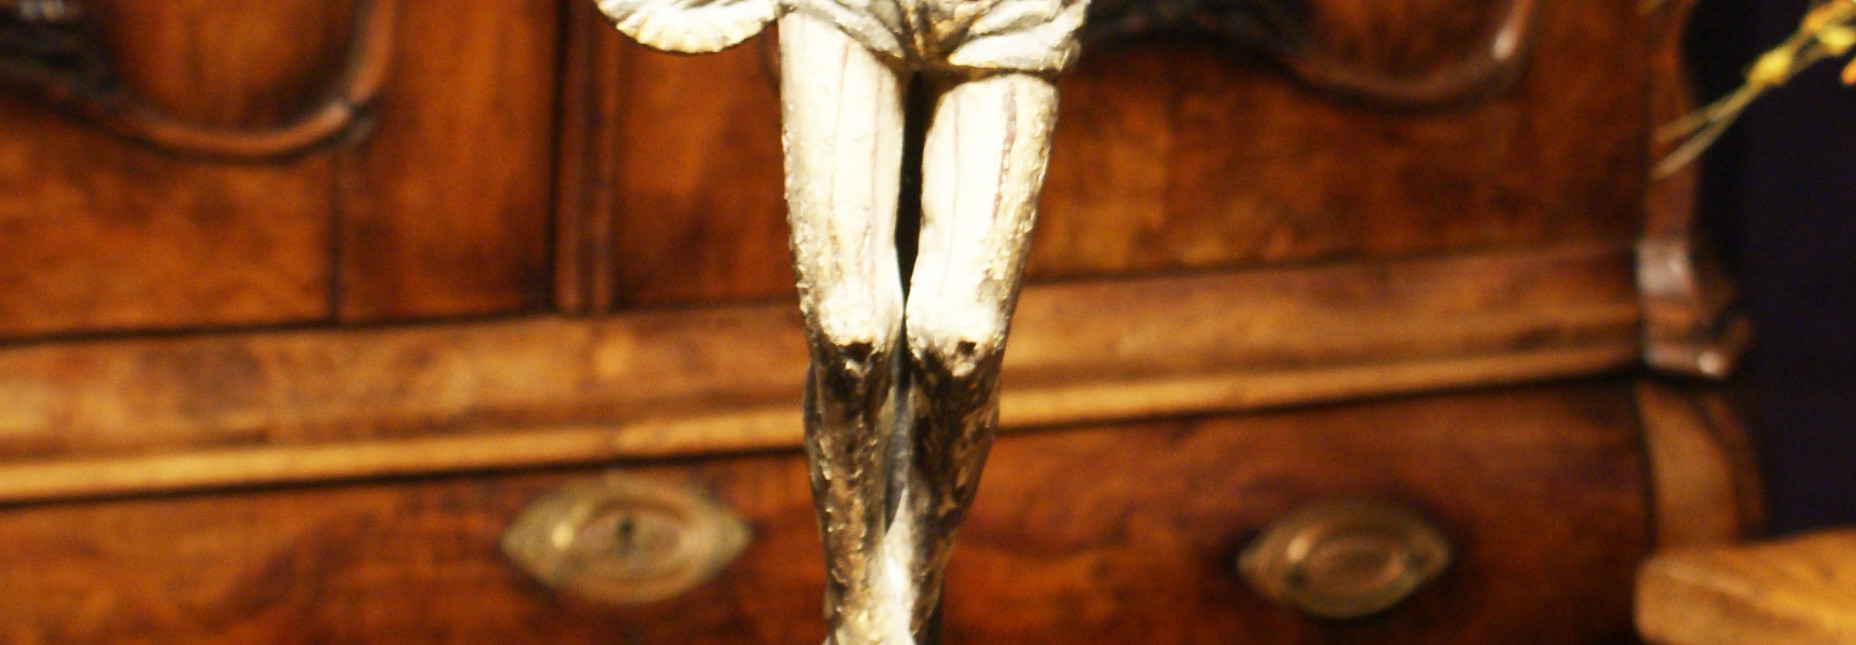 Spanish Colonial 19th Century Polychromed Carved Wood and Gesso Standing Crucifix on Base